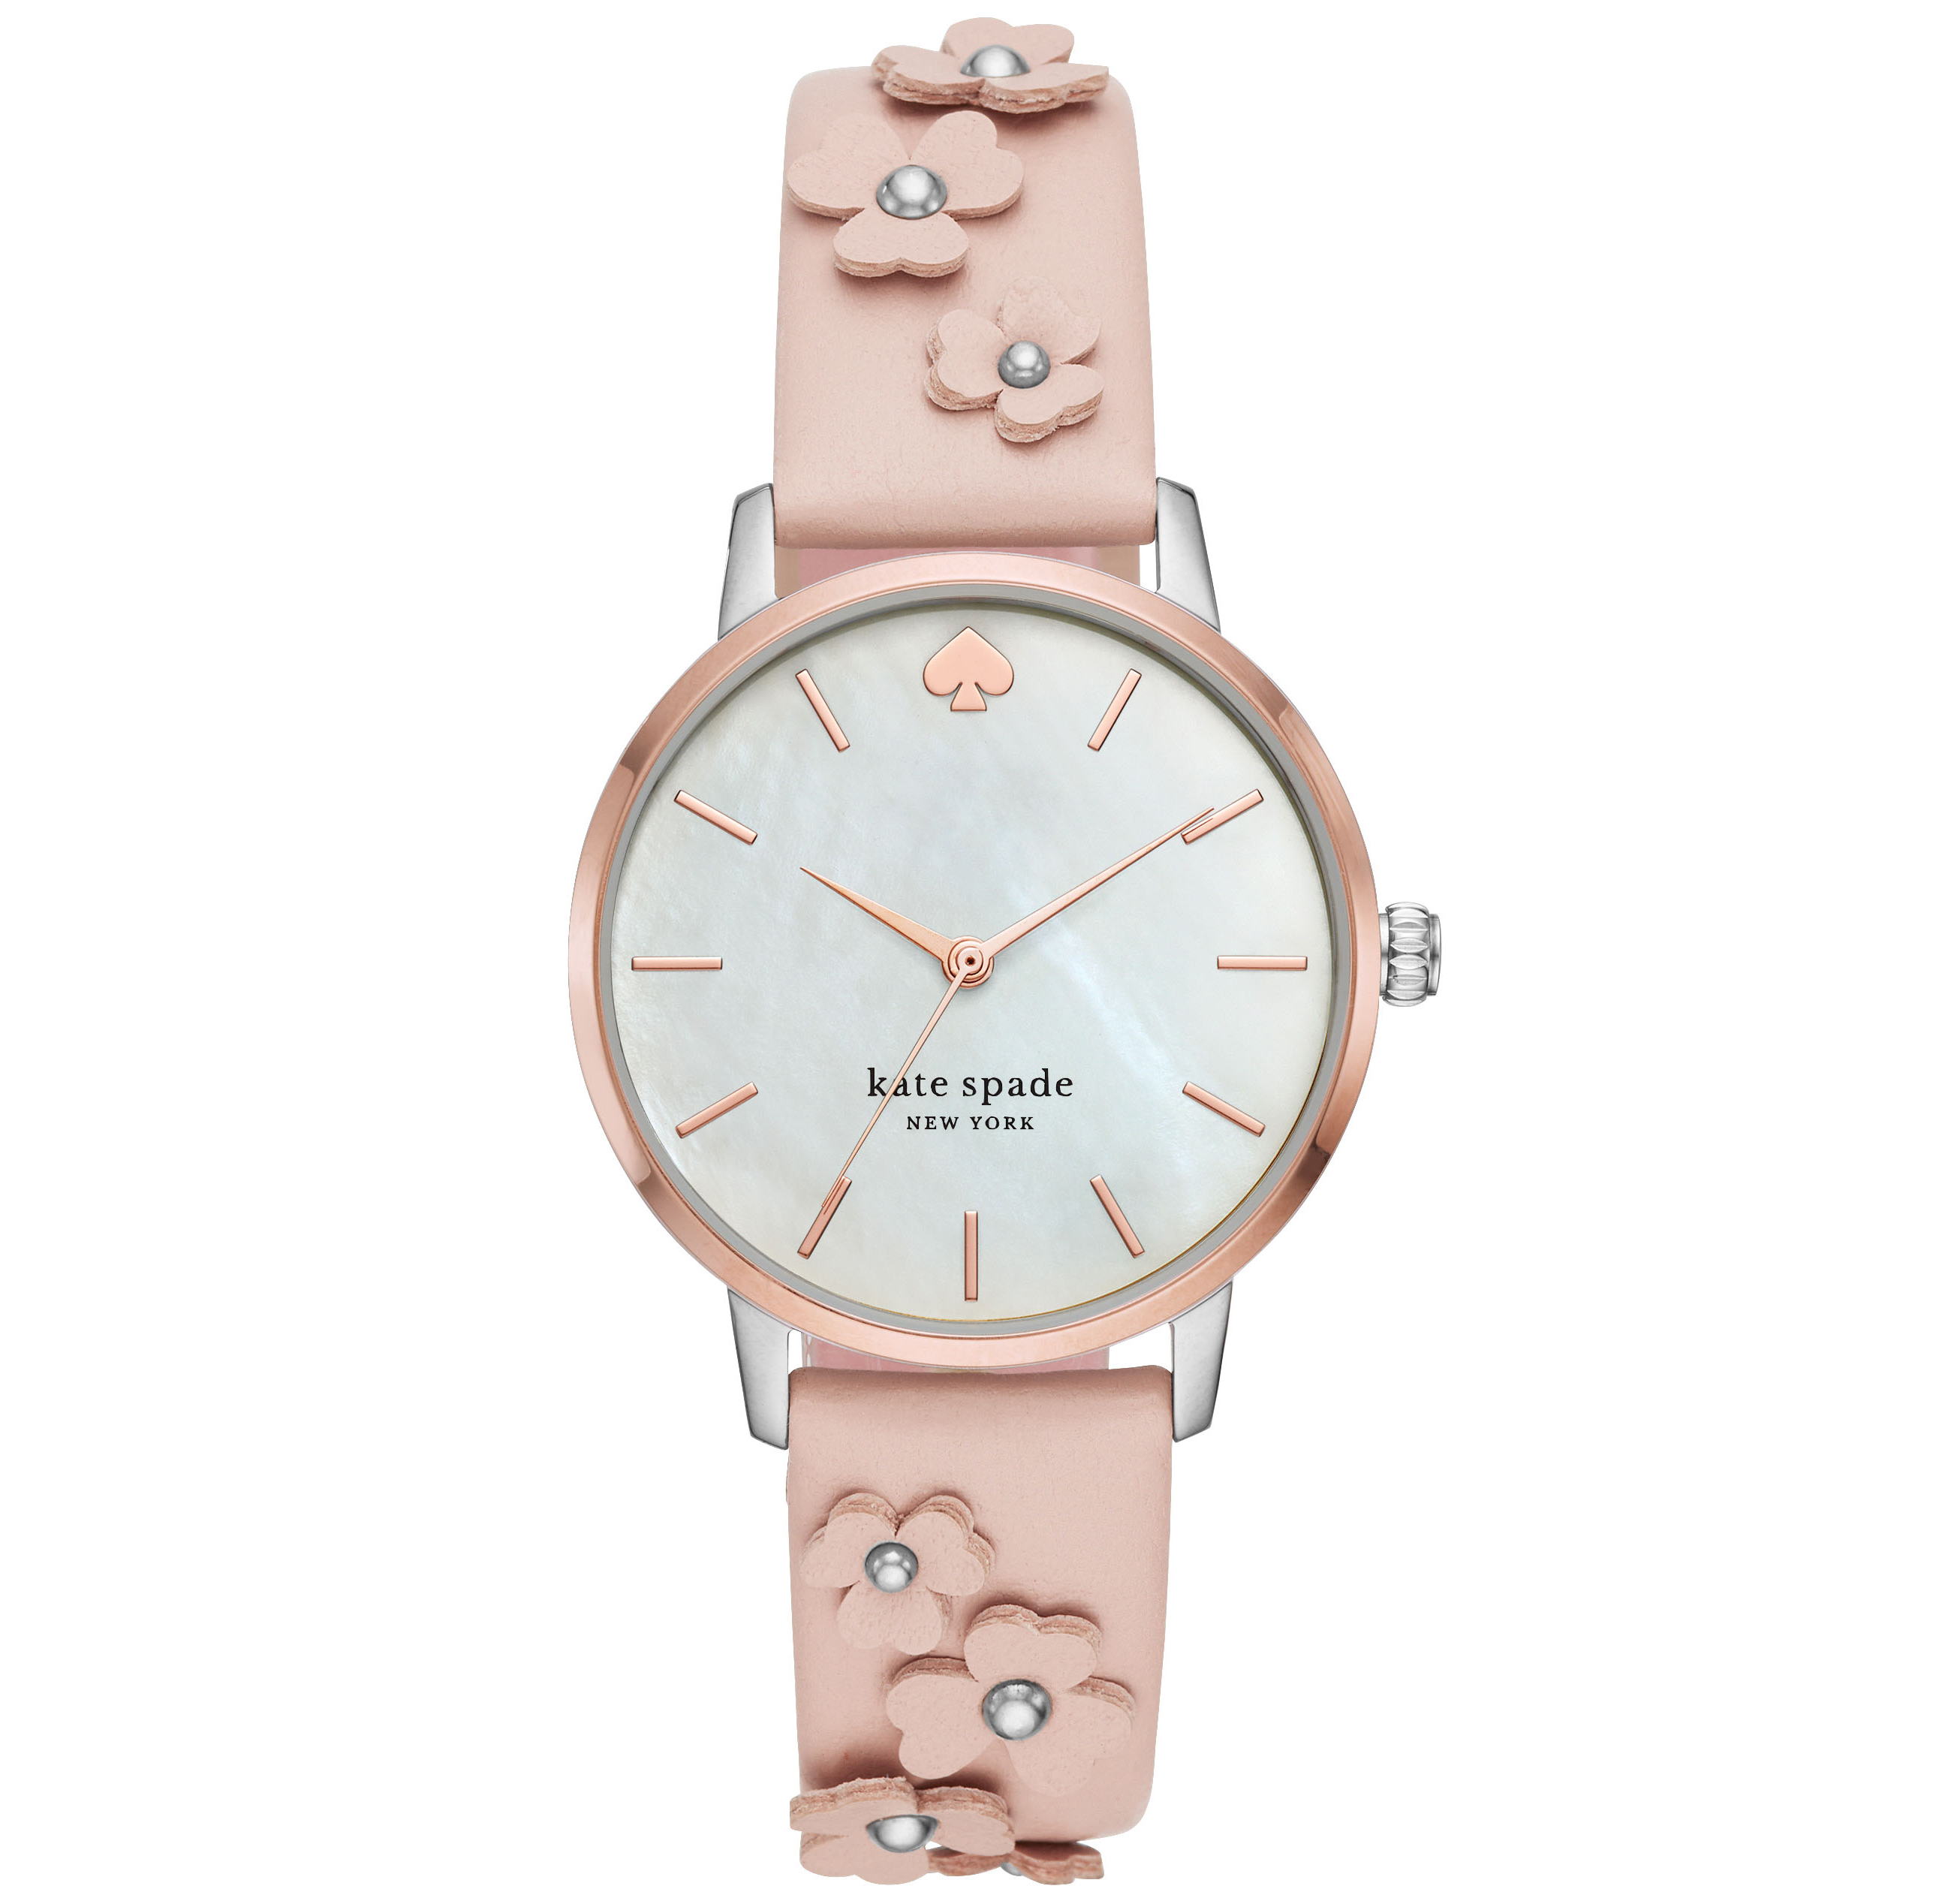 Kate Spade Metro Floral Vachetta Leather Watch